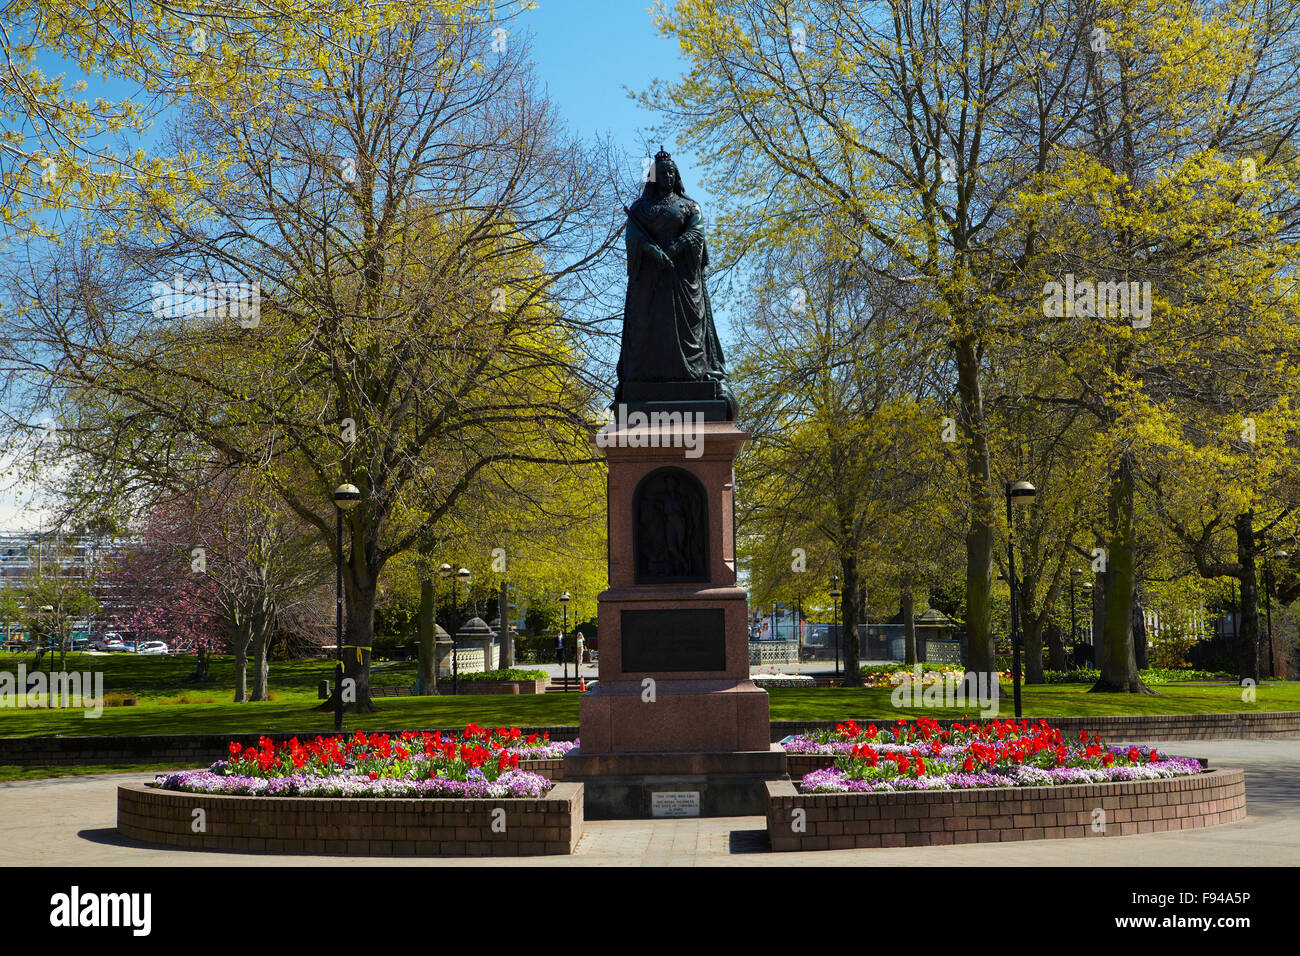 Queen Victoria Statue and flowers, Victoria Square, Christchurch, Canterbury, South Island, New Zealand - Stock Image